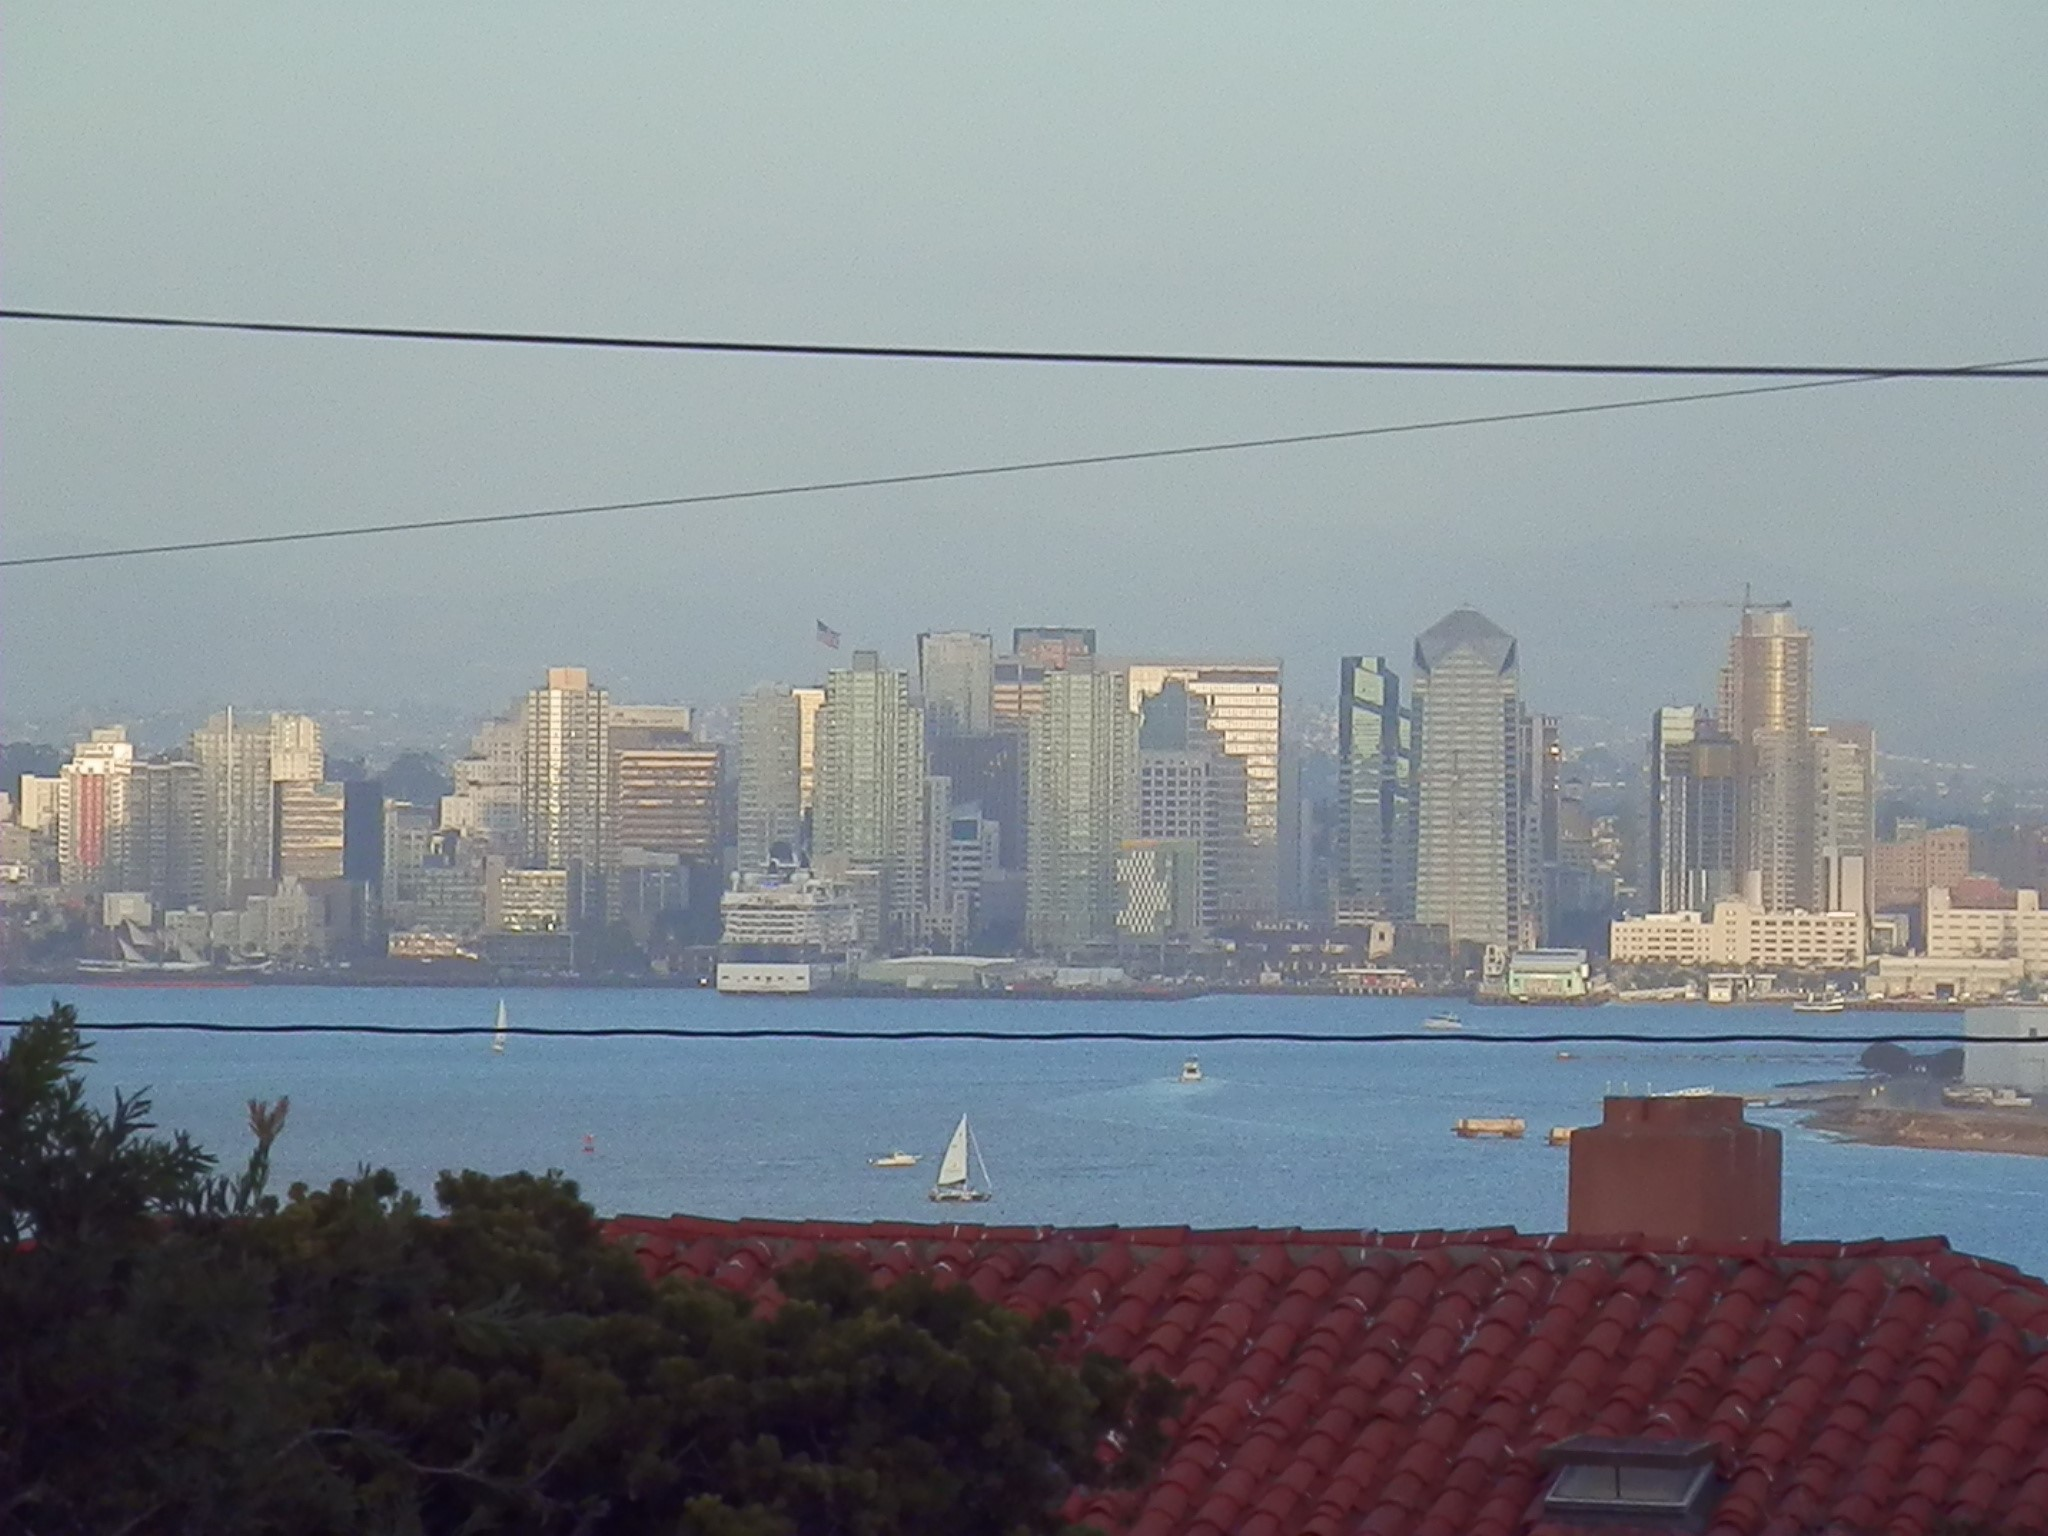 (A shot of the San Diego skyline from the La Playa neighborhood / Scott Beyer)